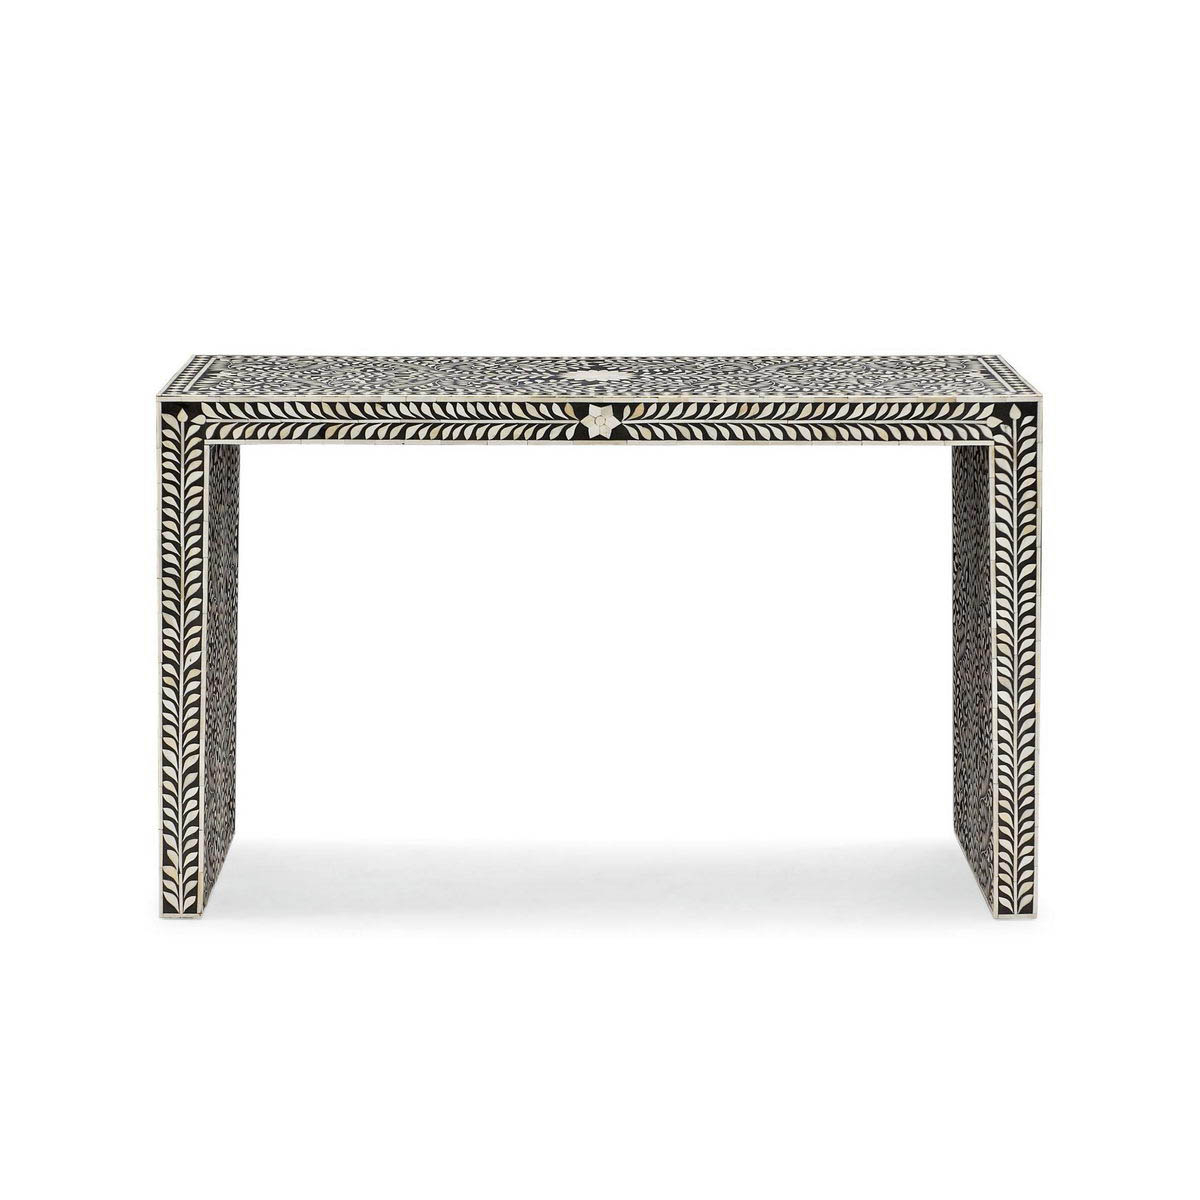 Console Tables Archives - Variety Arts Emporium pertaining to Archive Grey Console Tables (Image 19 of 30)